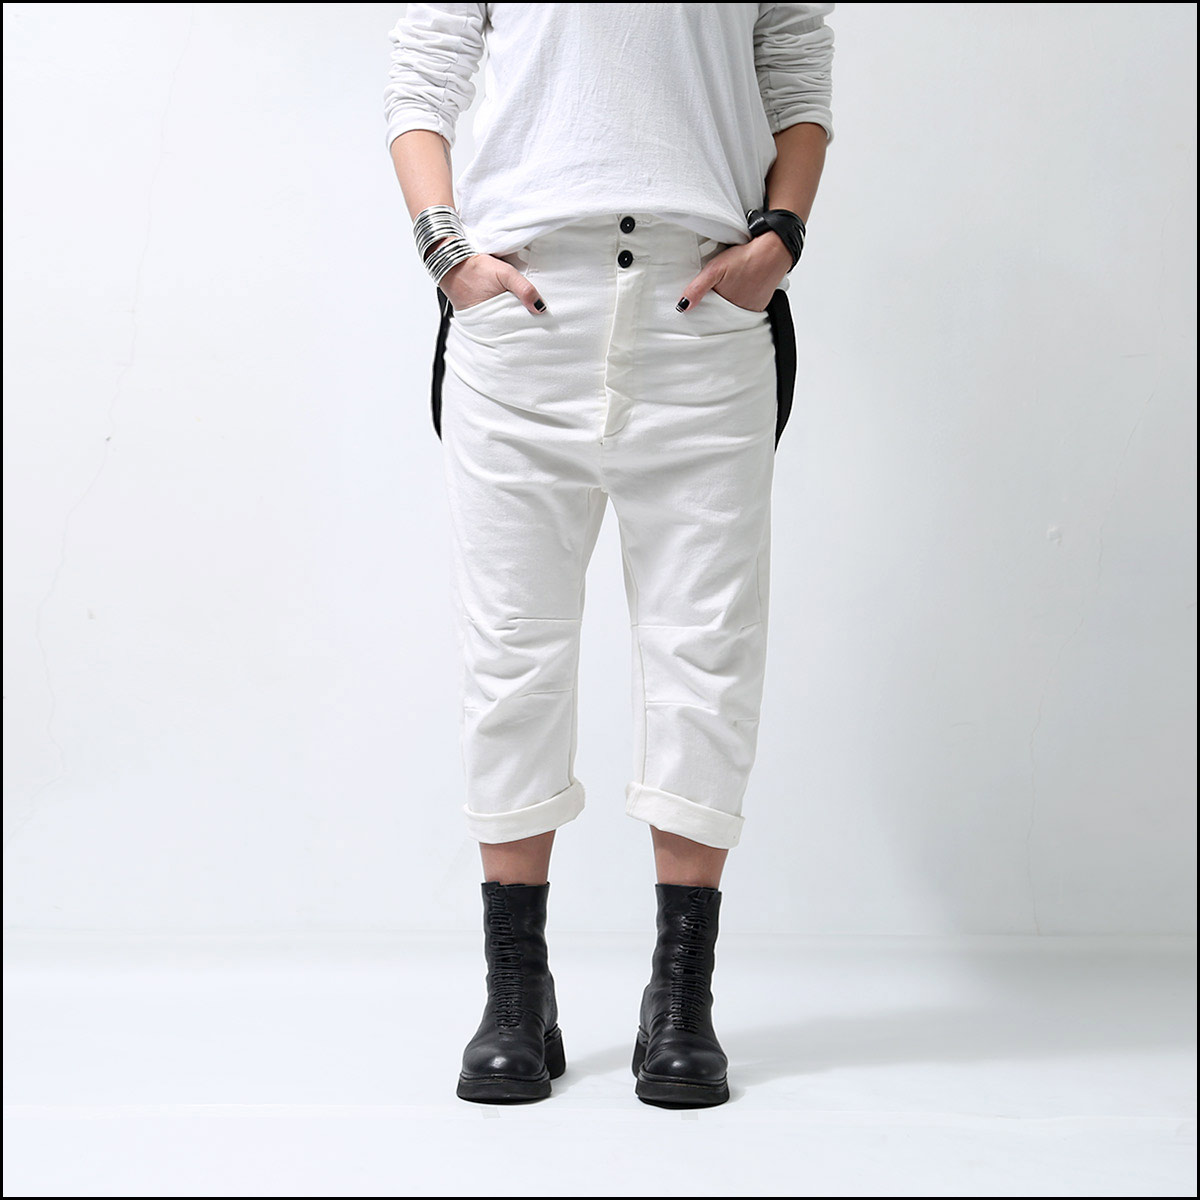 MAVRANYMA_SUSPENDER DENIM P48.07_WHITE